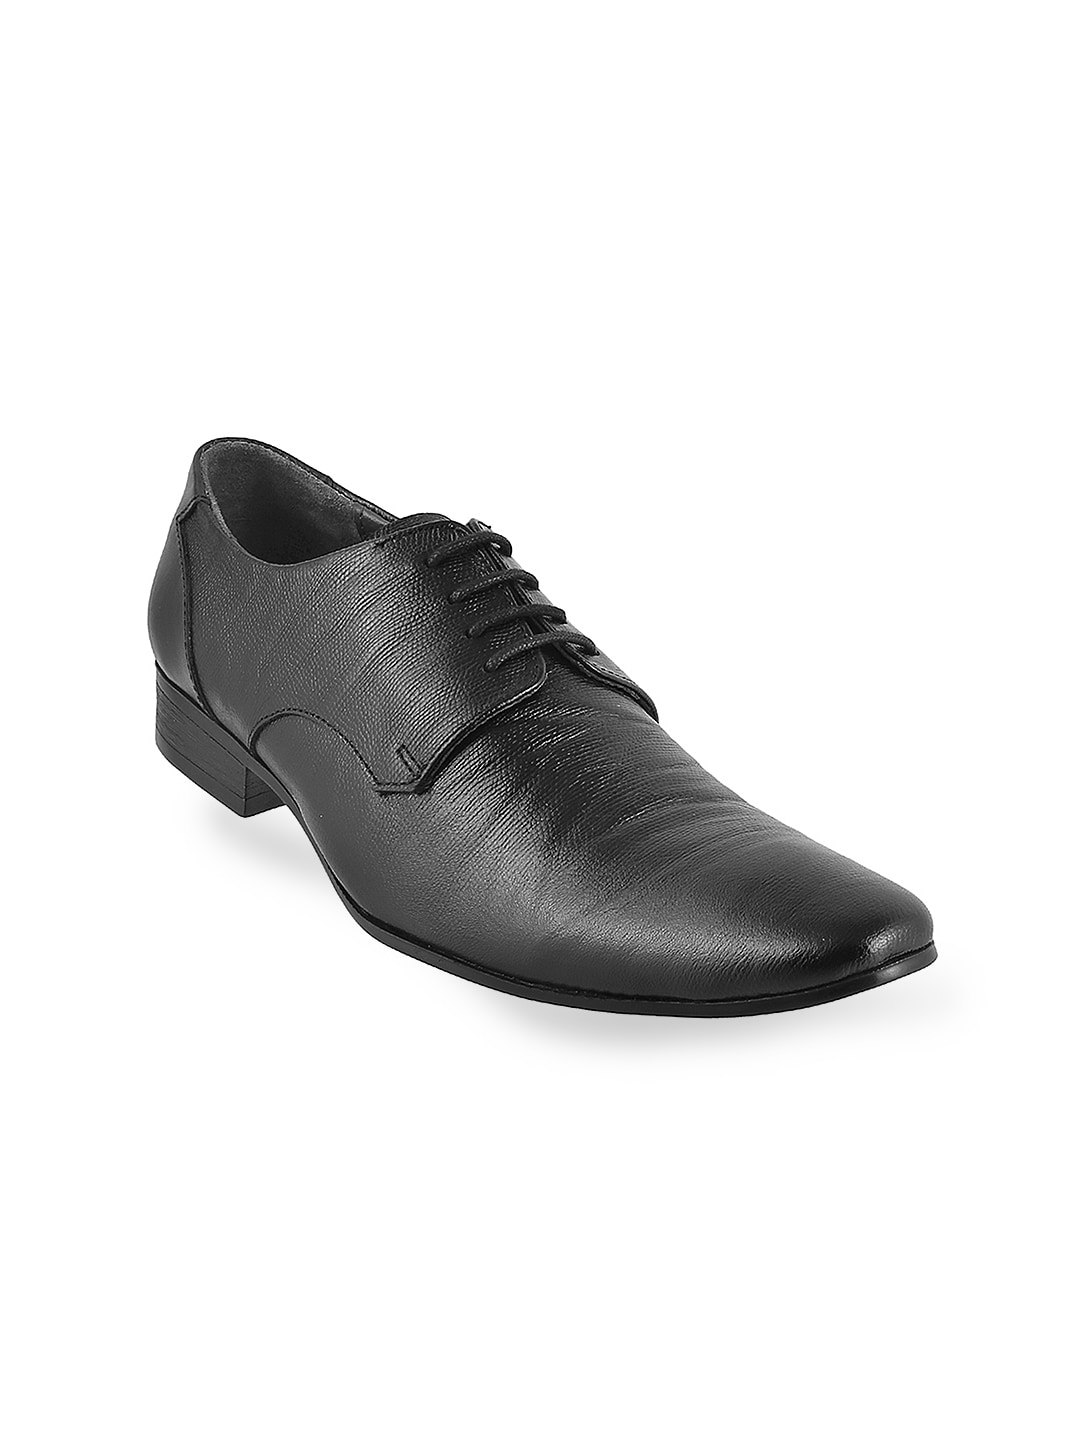 Metro Men Black Solid Leather Derbys image